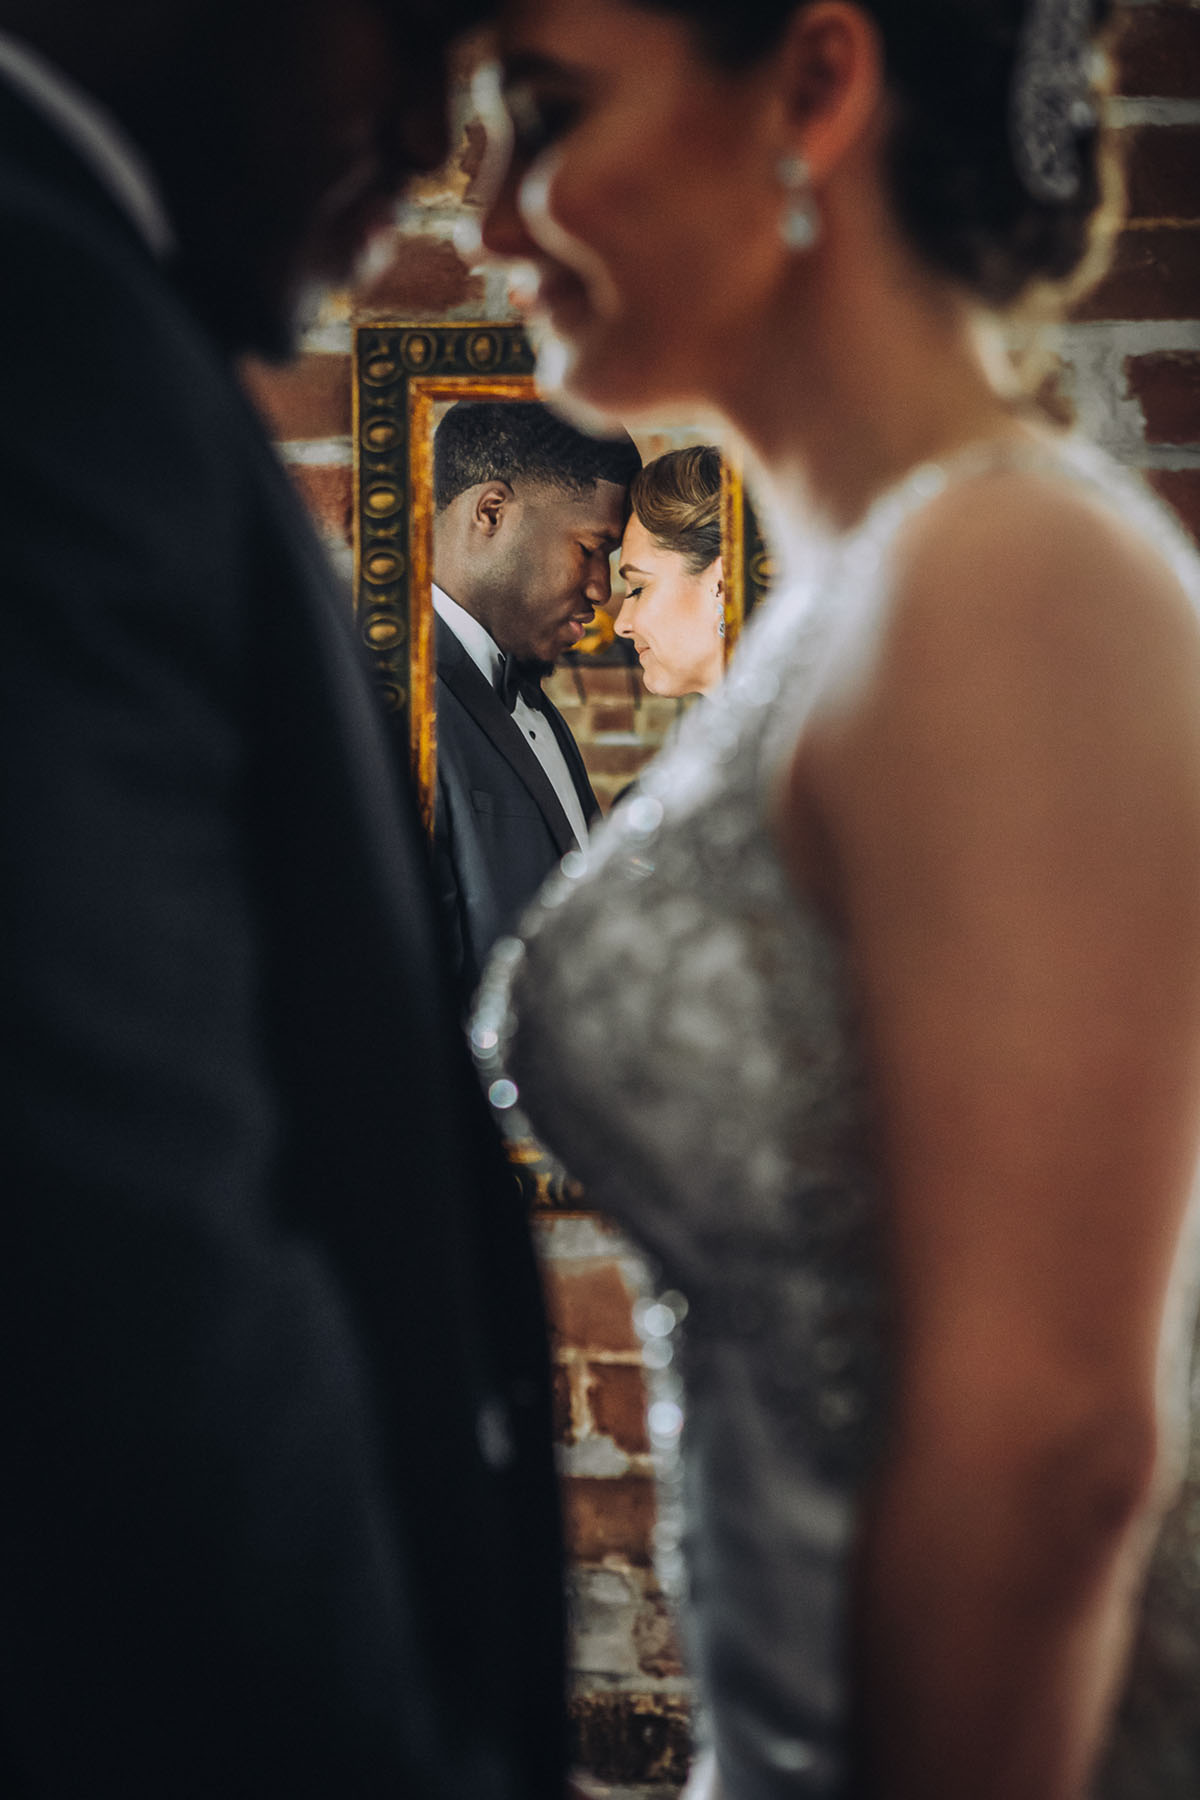 An artistic portrait of a bride and groom with a mirror reflection. Photo: Capture Studio Photography